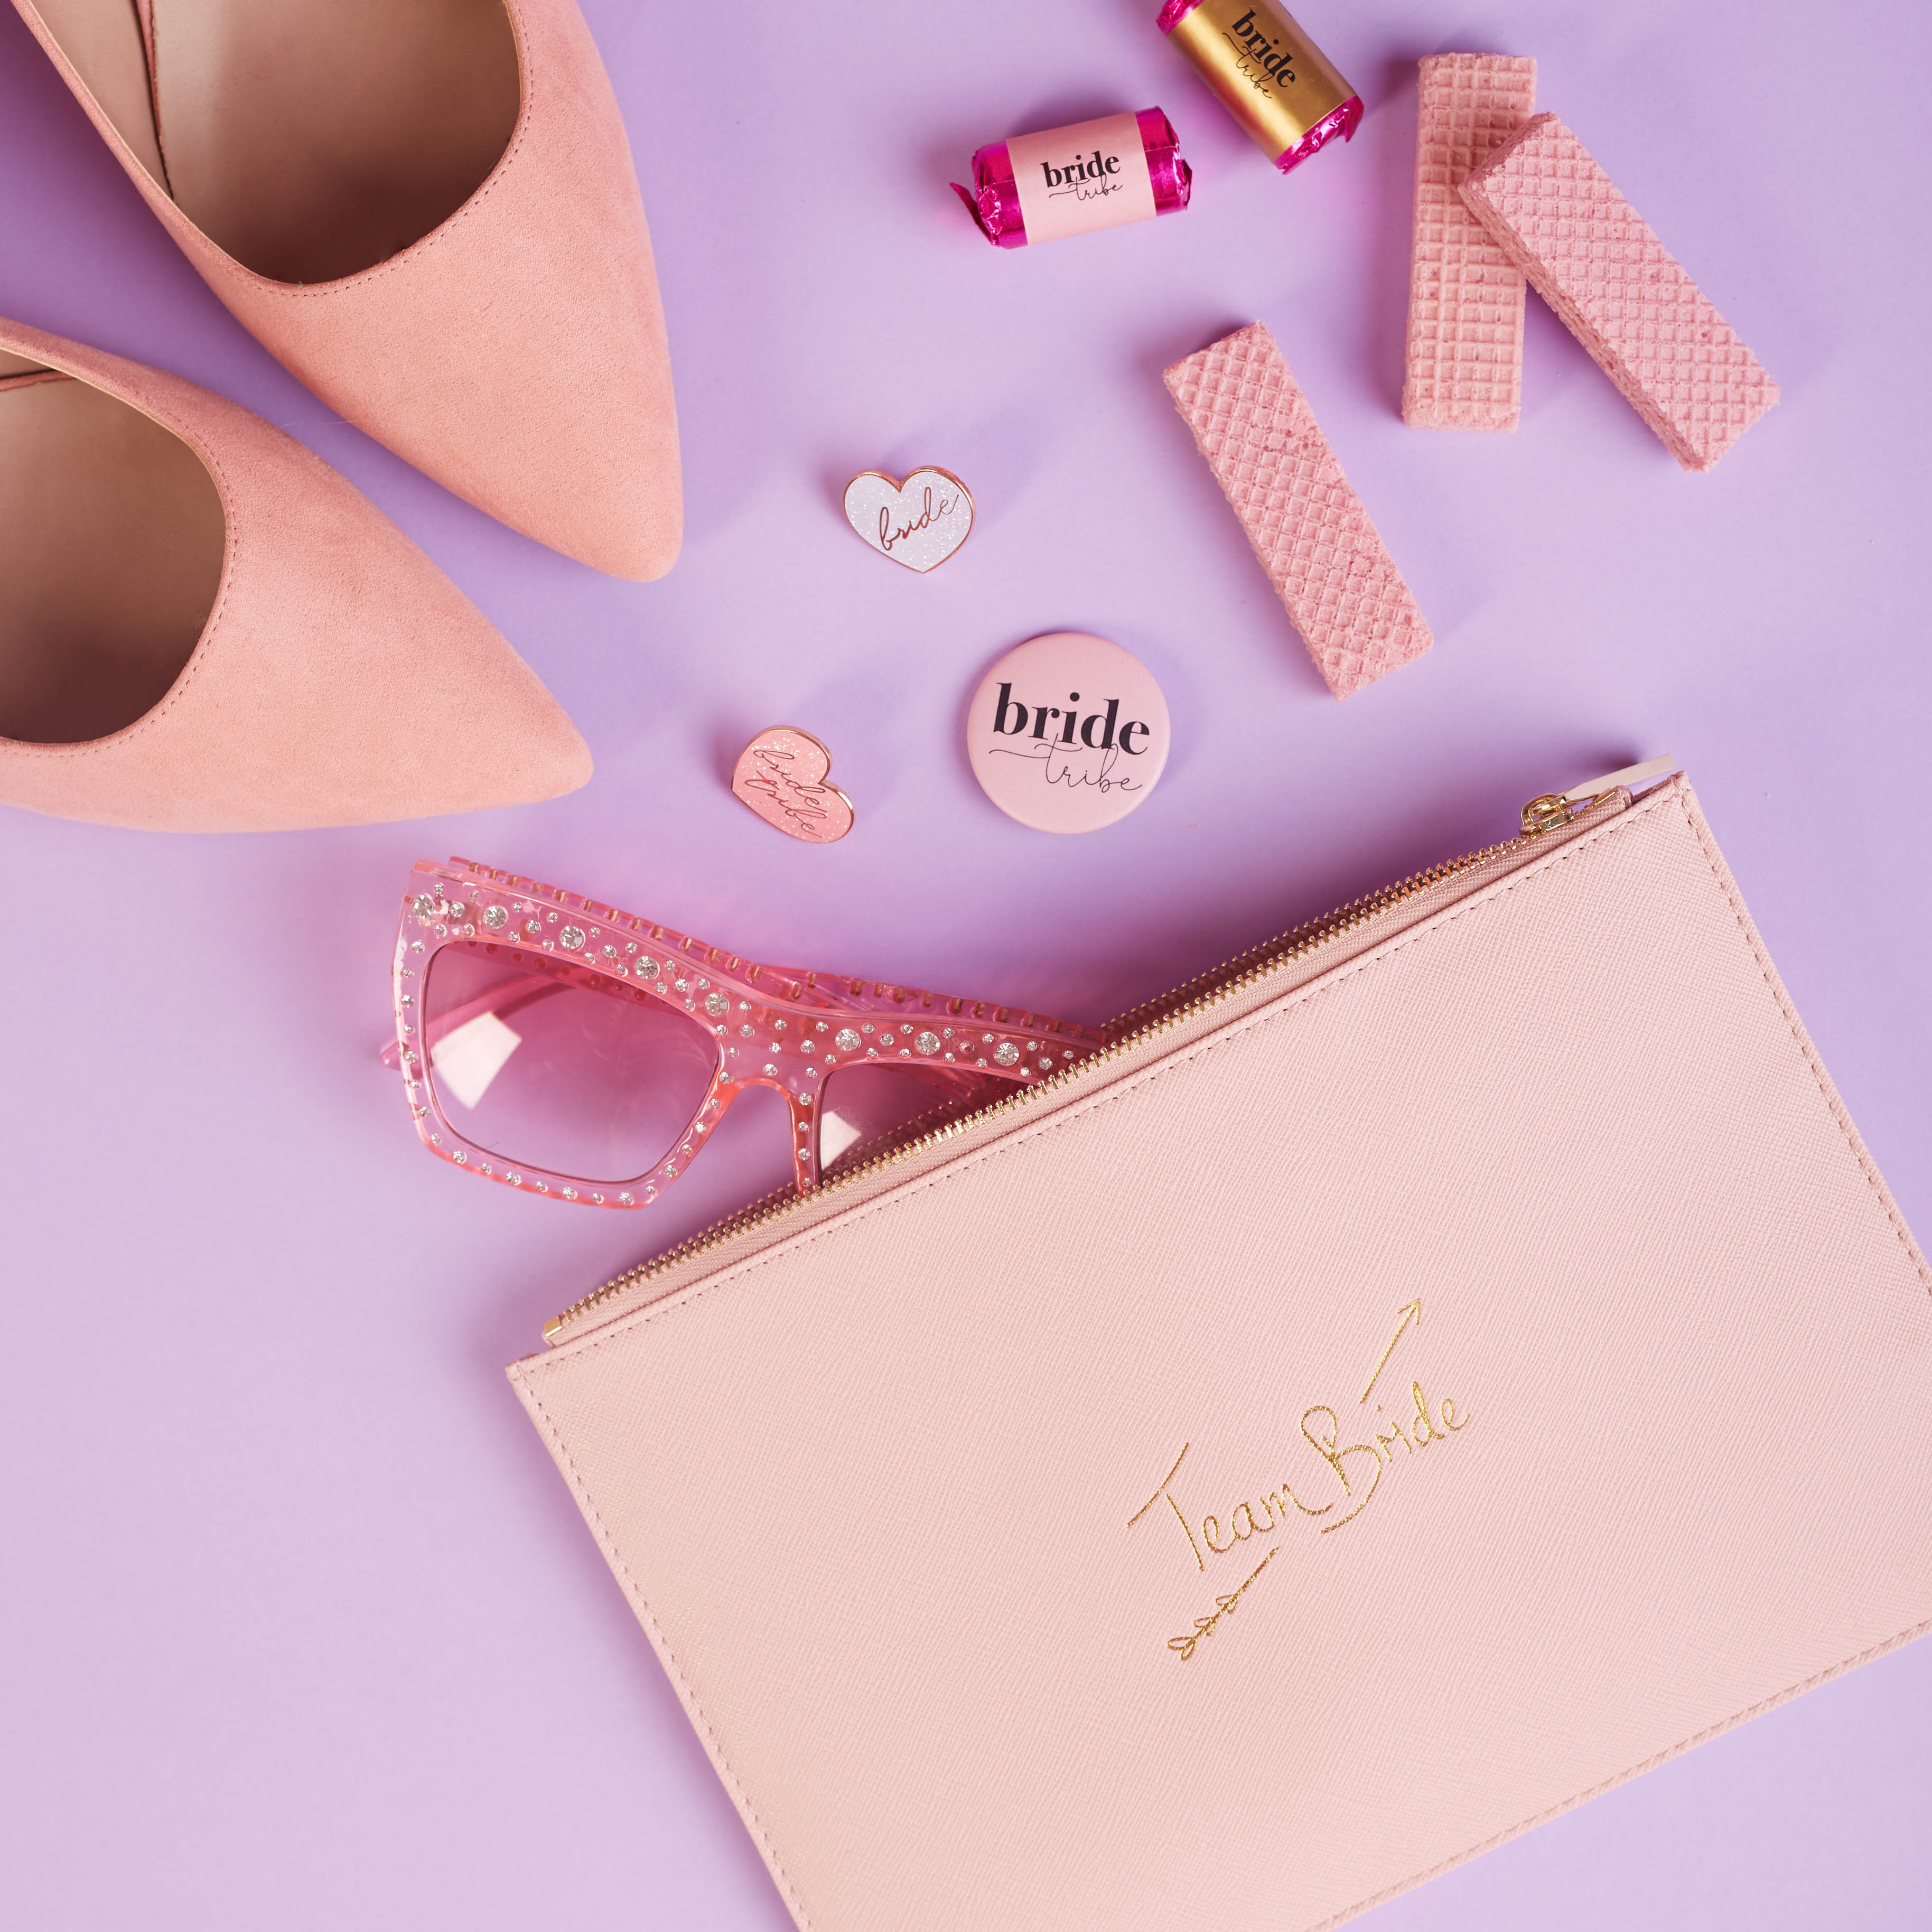 Style up your wedding celebrations with these gorgeous bridal clutch bags